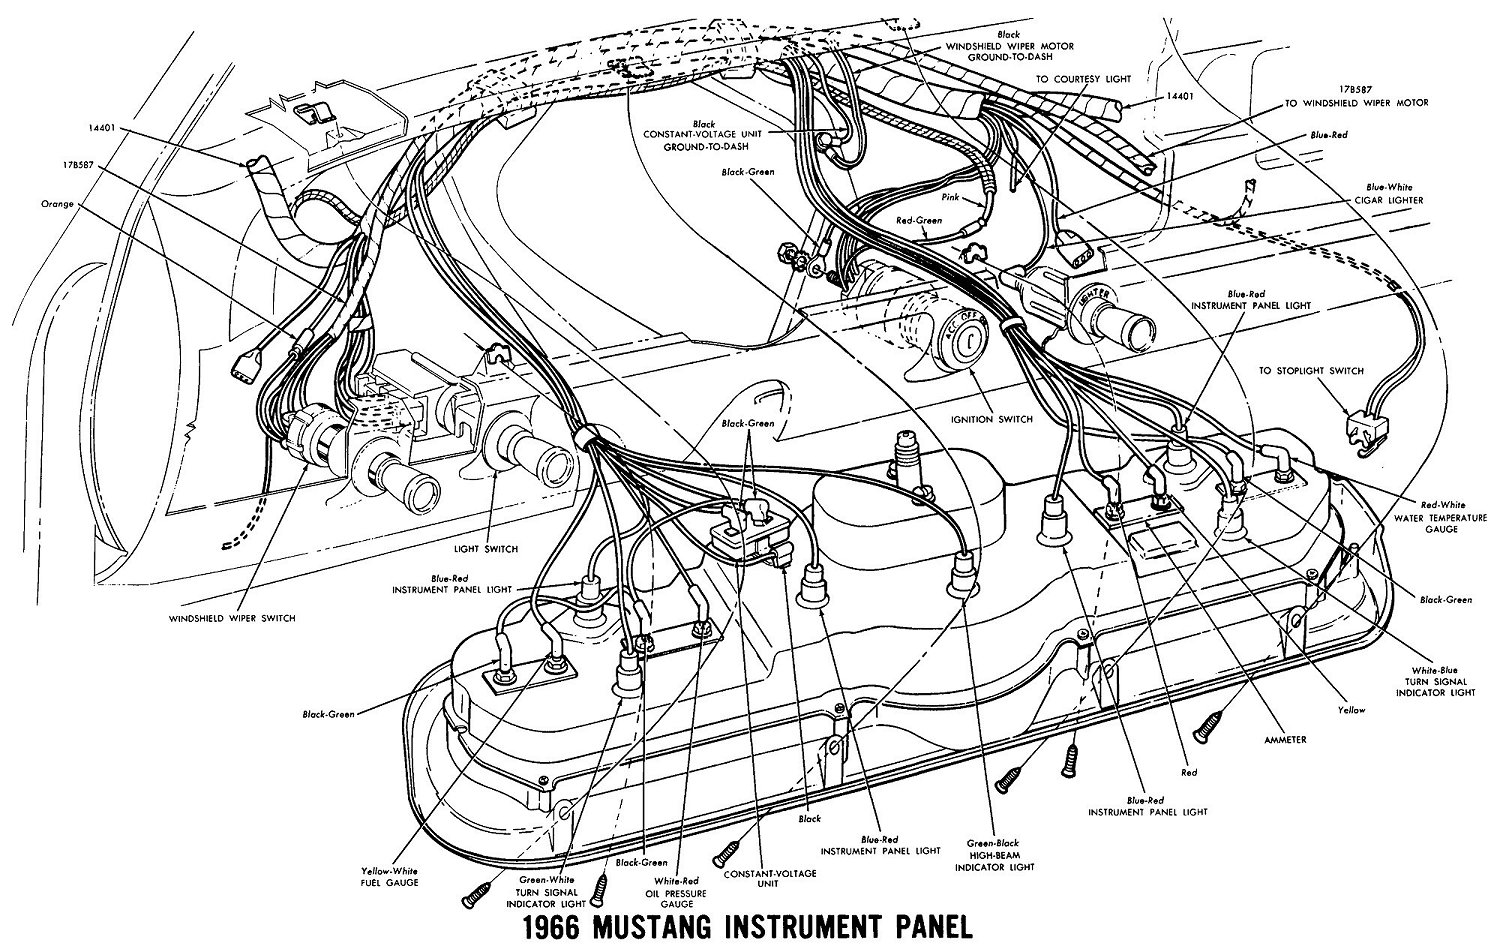 66InstrumentWiring lelu's 66 mustang 1966 mustang wiring diagrams 66 mustang wiring diagram at virtualis.co